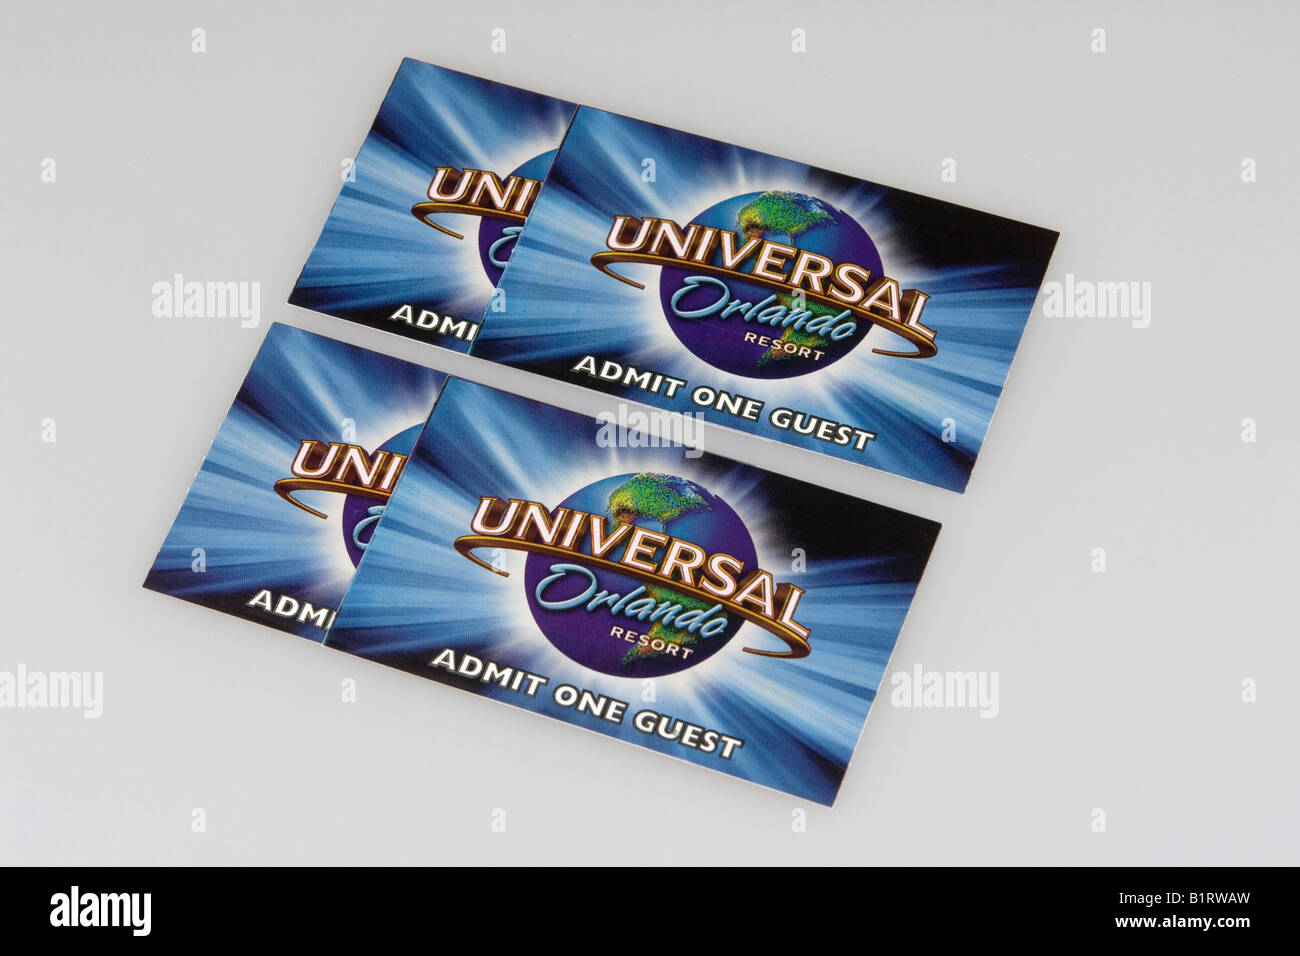 Universal studios orlando deals on tickets